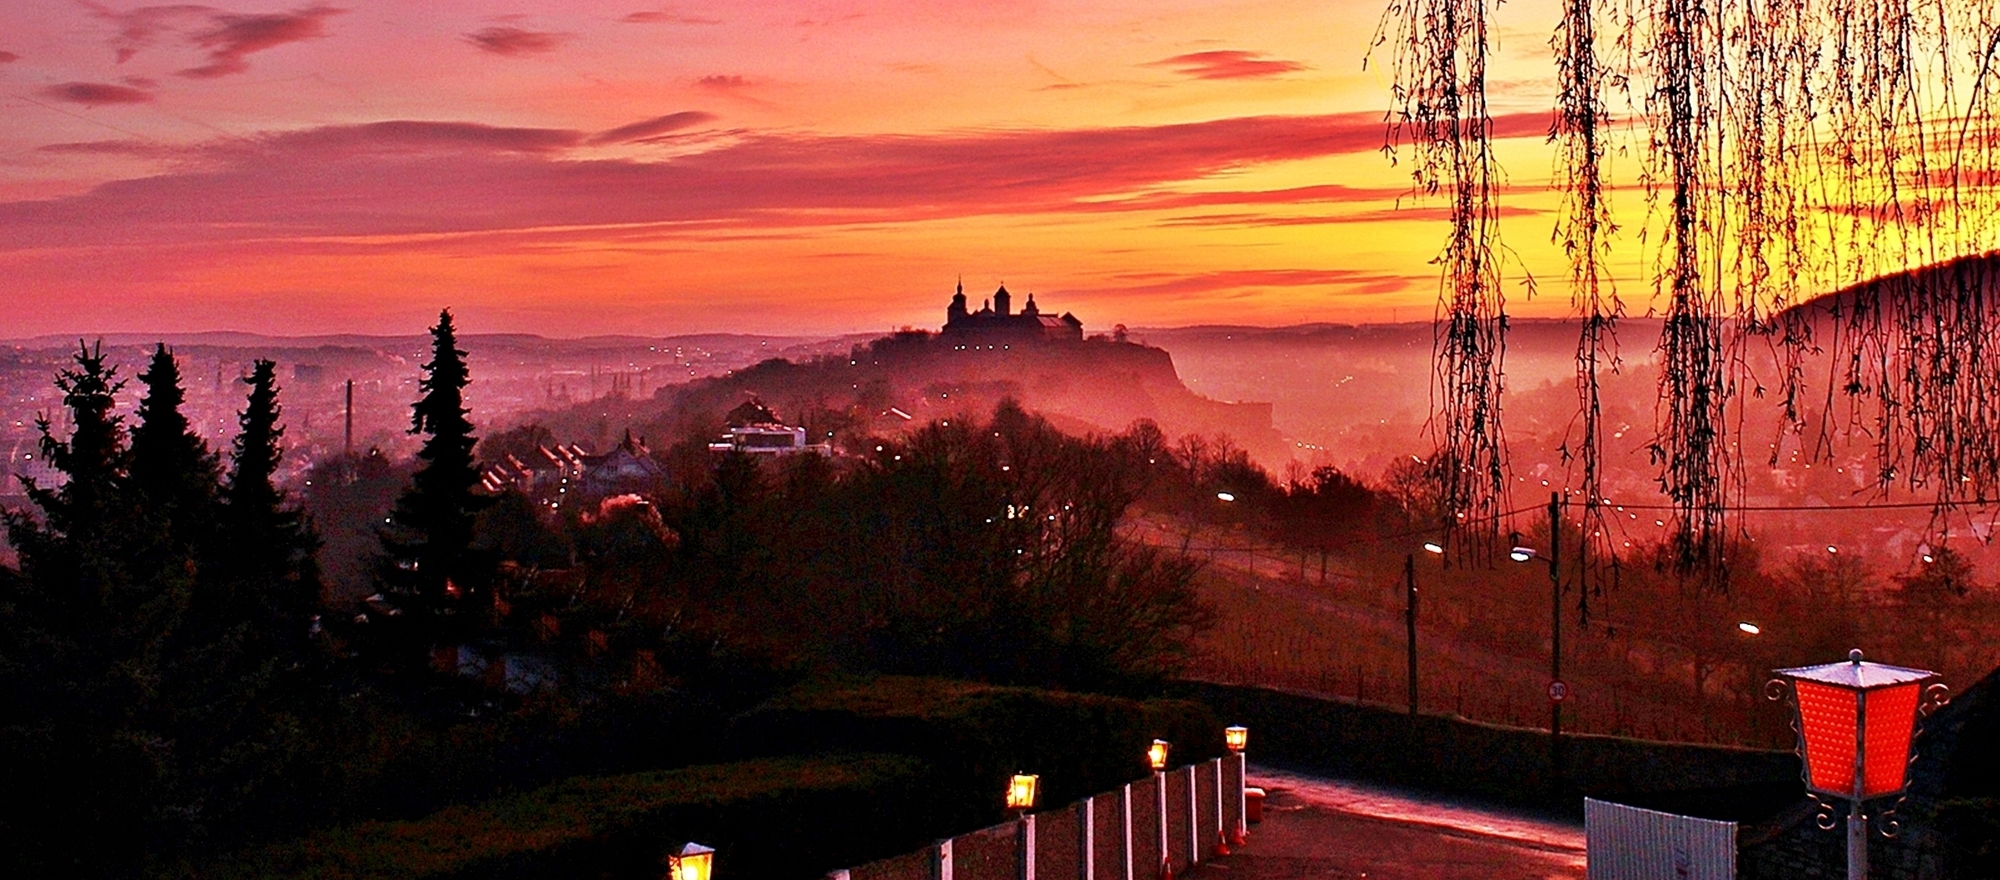 Enjoy the sunrise over the rooftops of Würzburg from the terrace of the 3-star Superior Hotel Ringhotel Wittelsbacher Hoeh